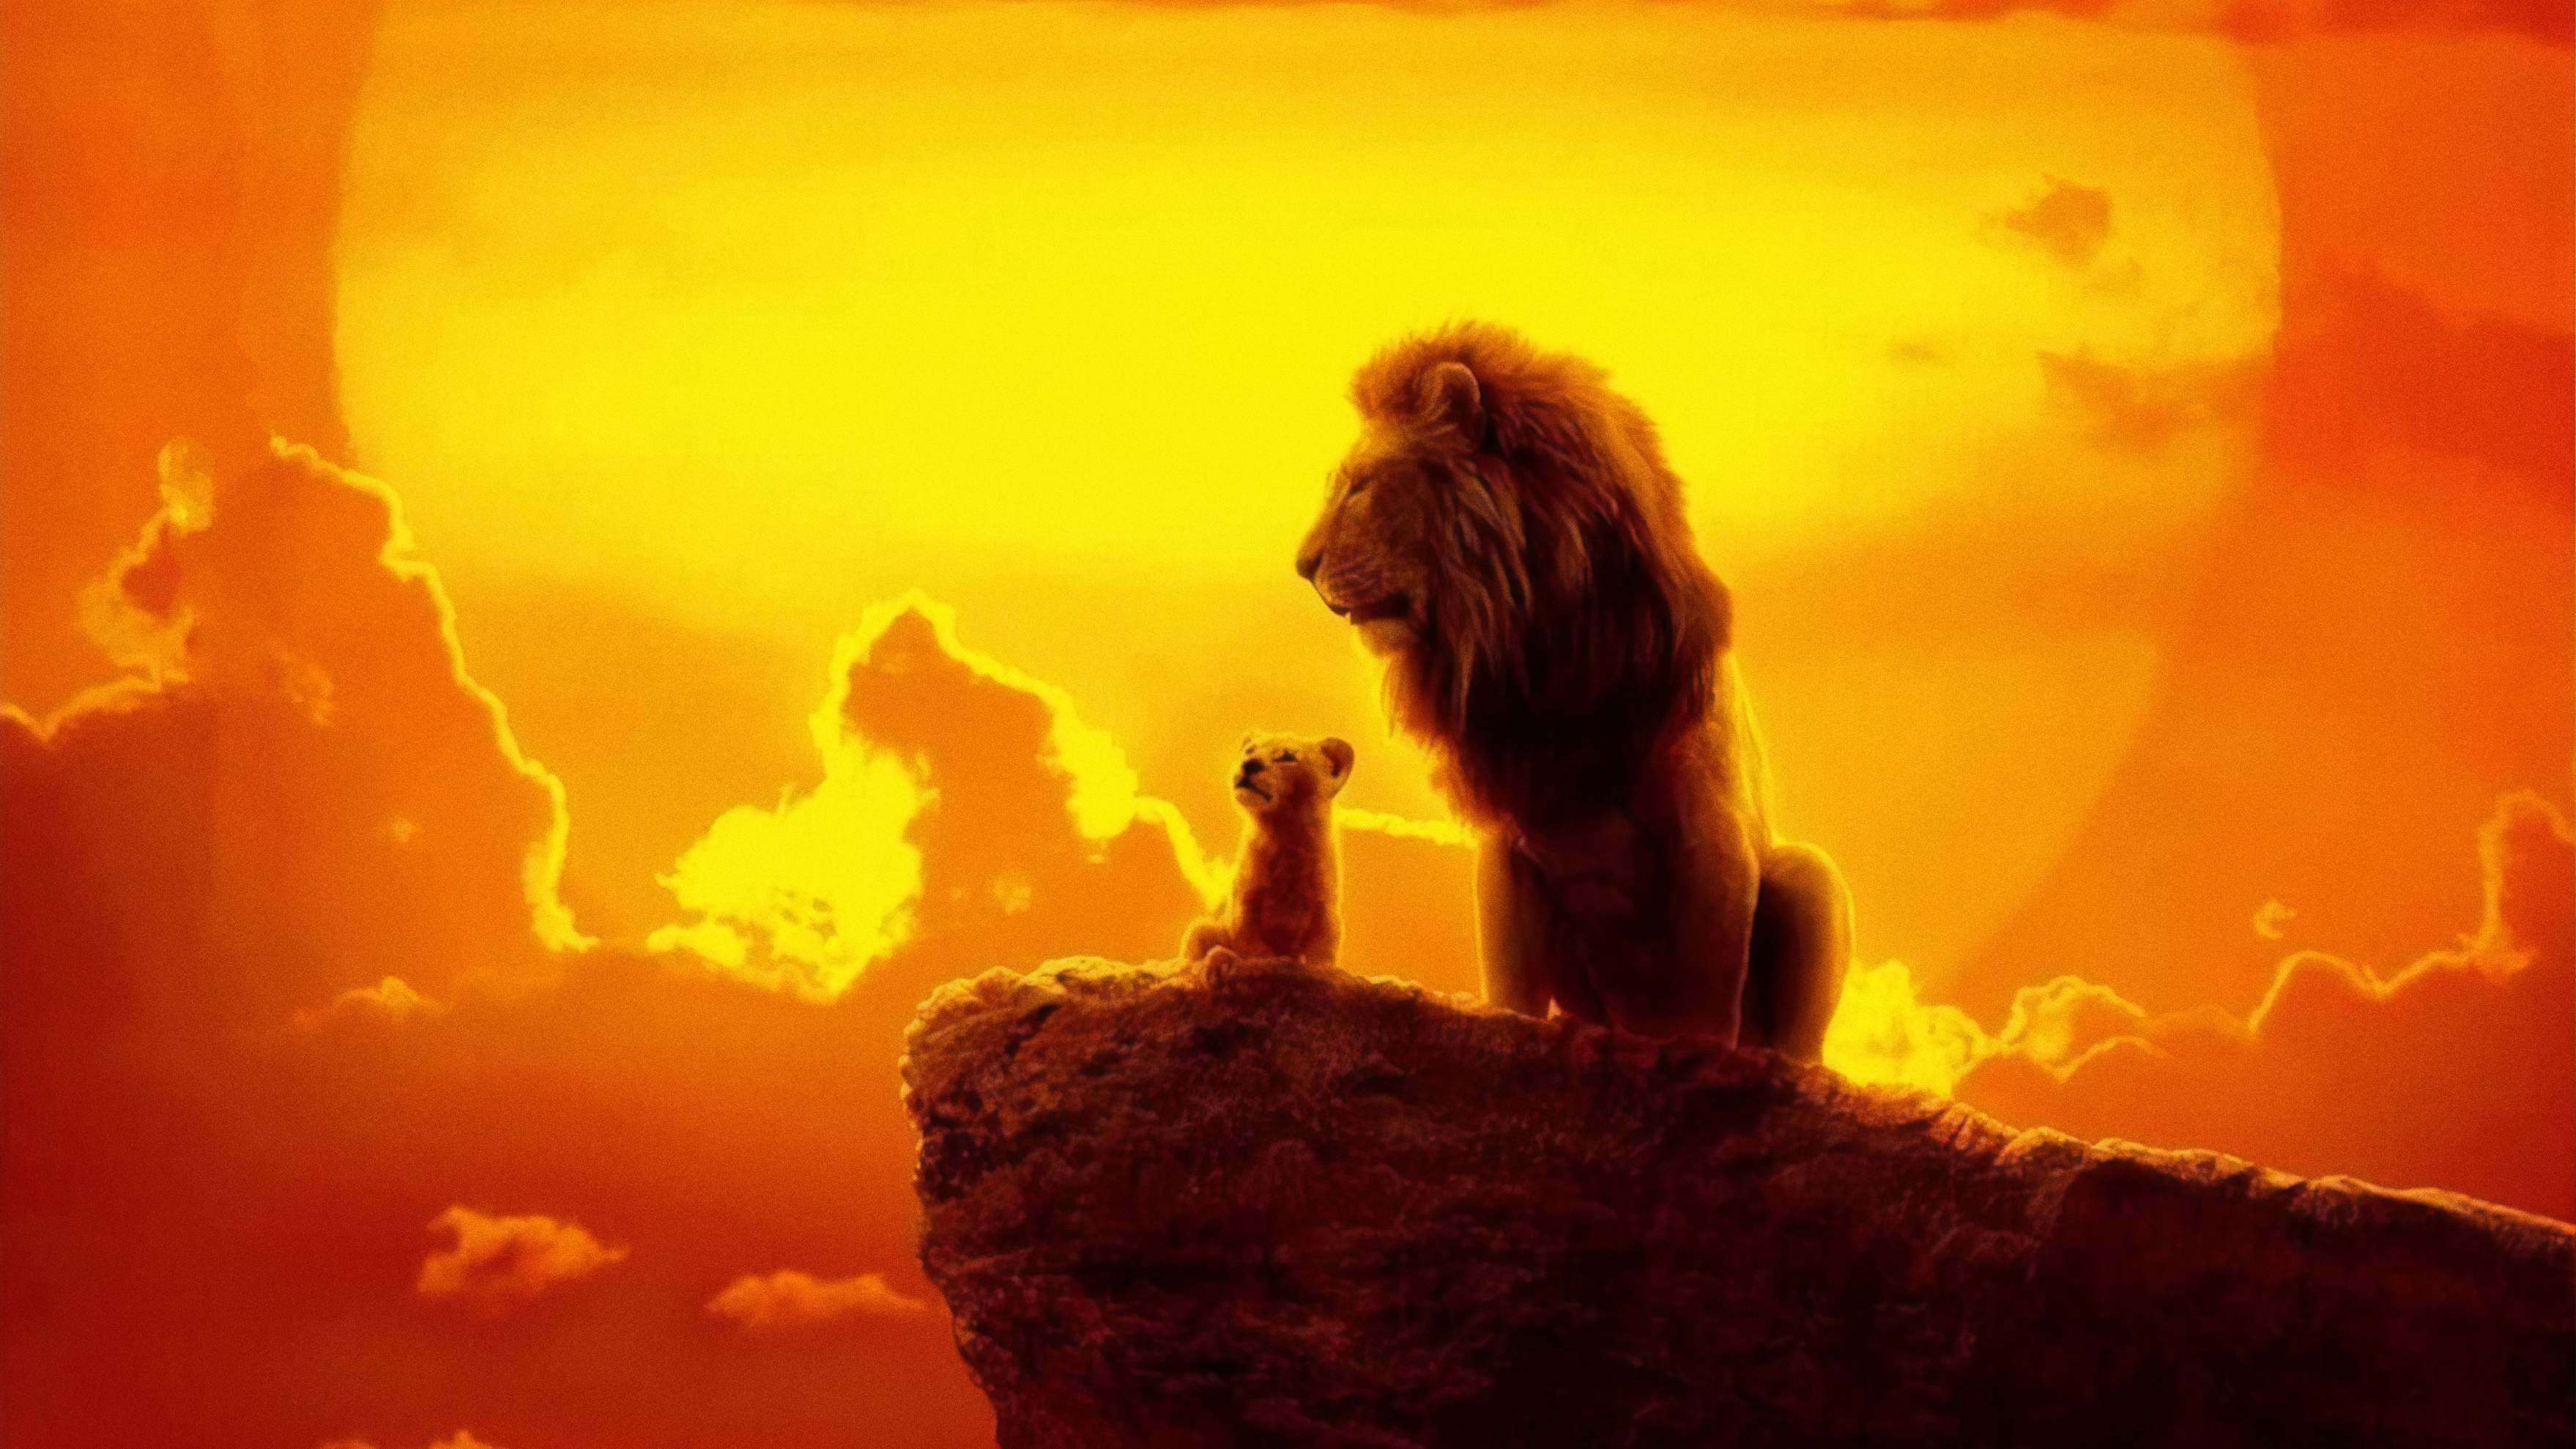 The Lion King 2019 4k - Lion King 2019 , HD Wallpaper & Backgrounds